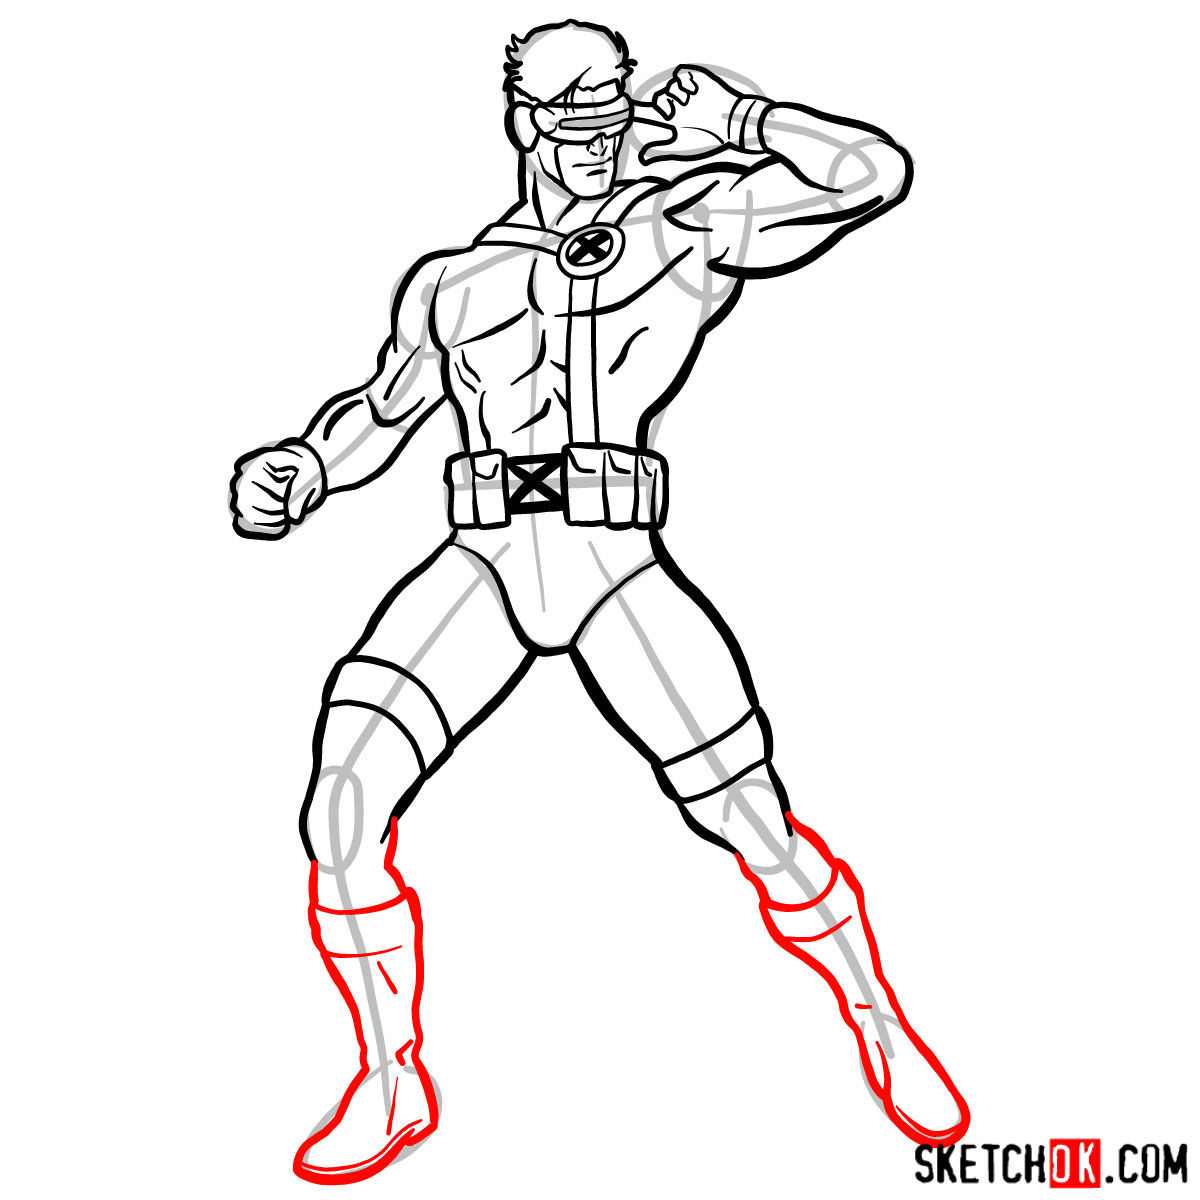 How to draw Cyclops from X-Men - step 14